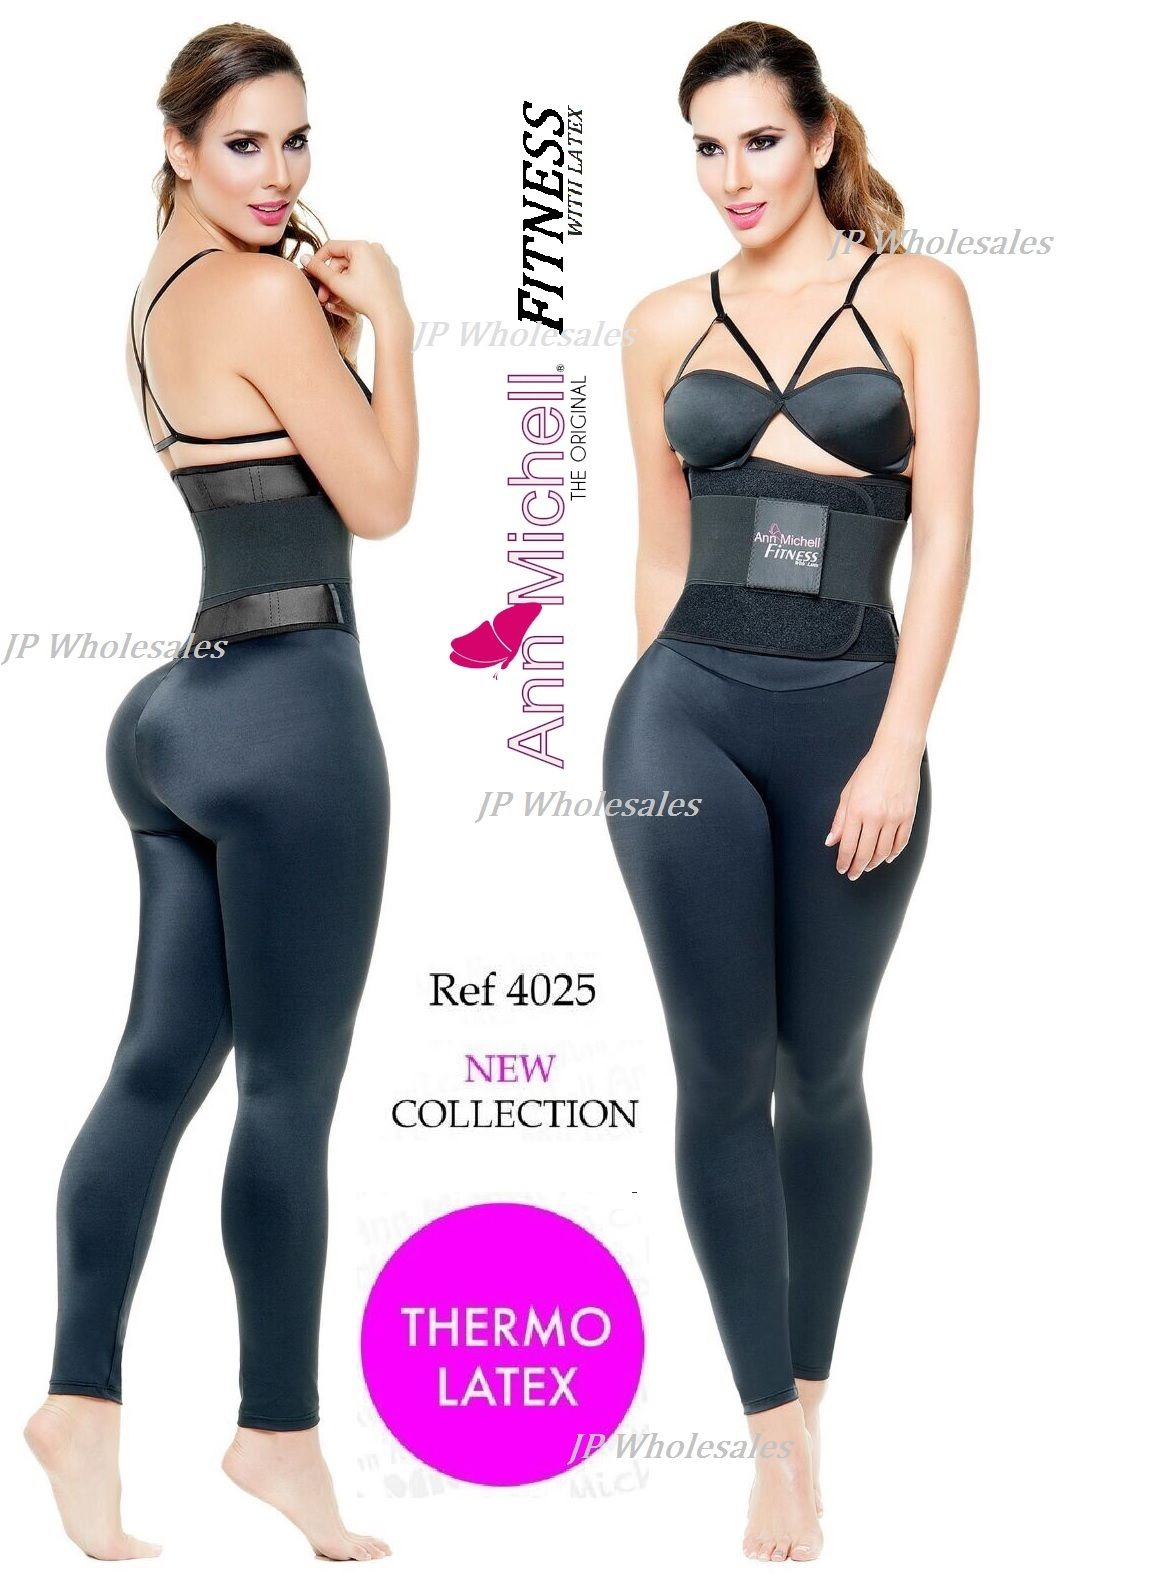 745b9c486b Image of ANN MICHELL 4025 FITNESS THERMO LATEX XTREME POWER BELT BODY  SHAPER GYM TRAINER. Black ...